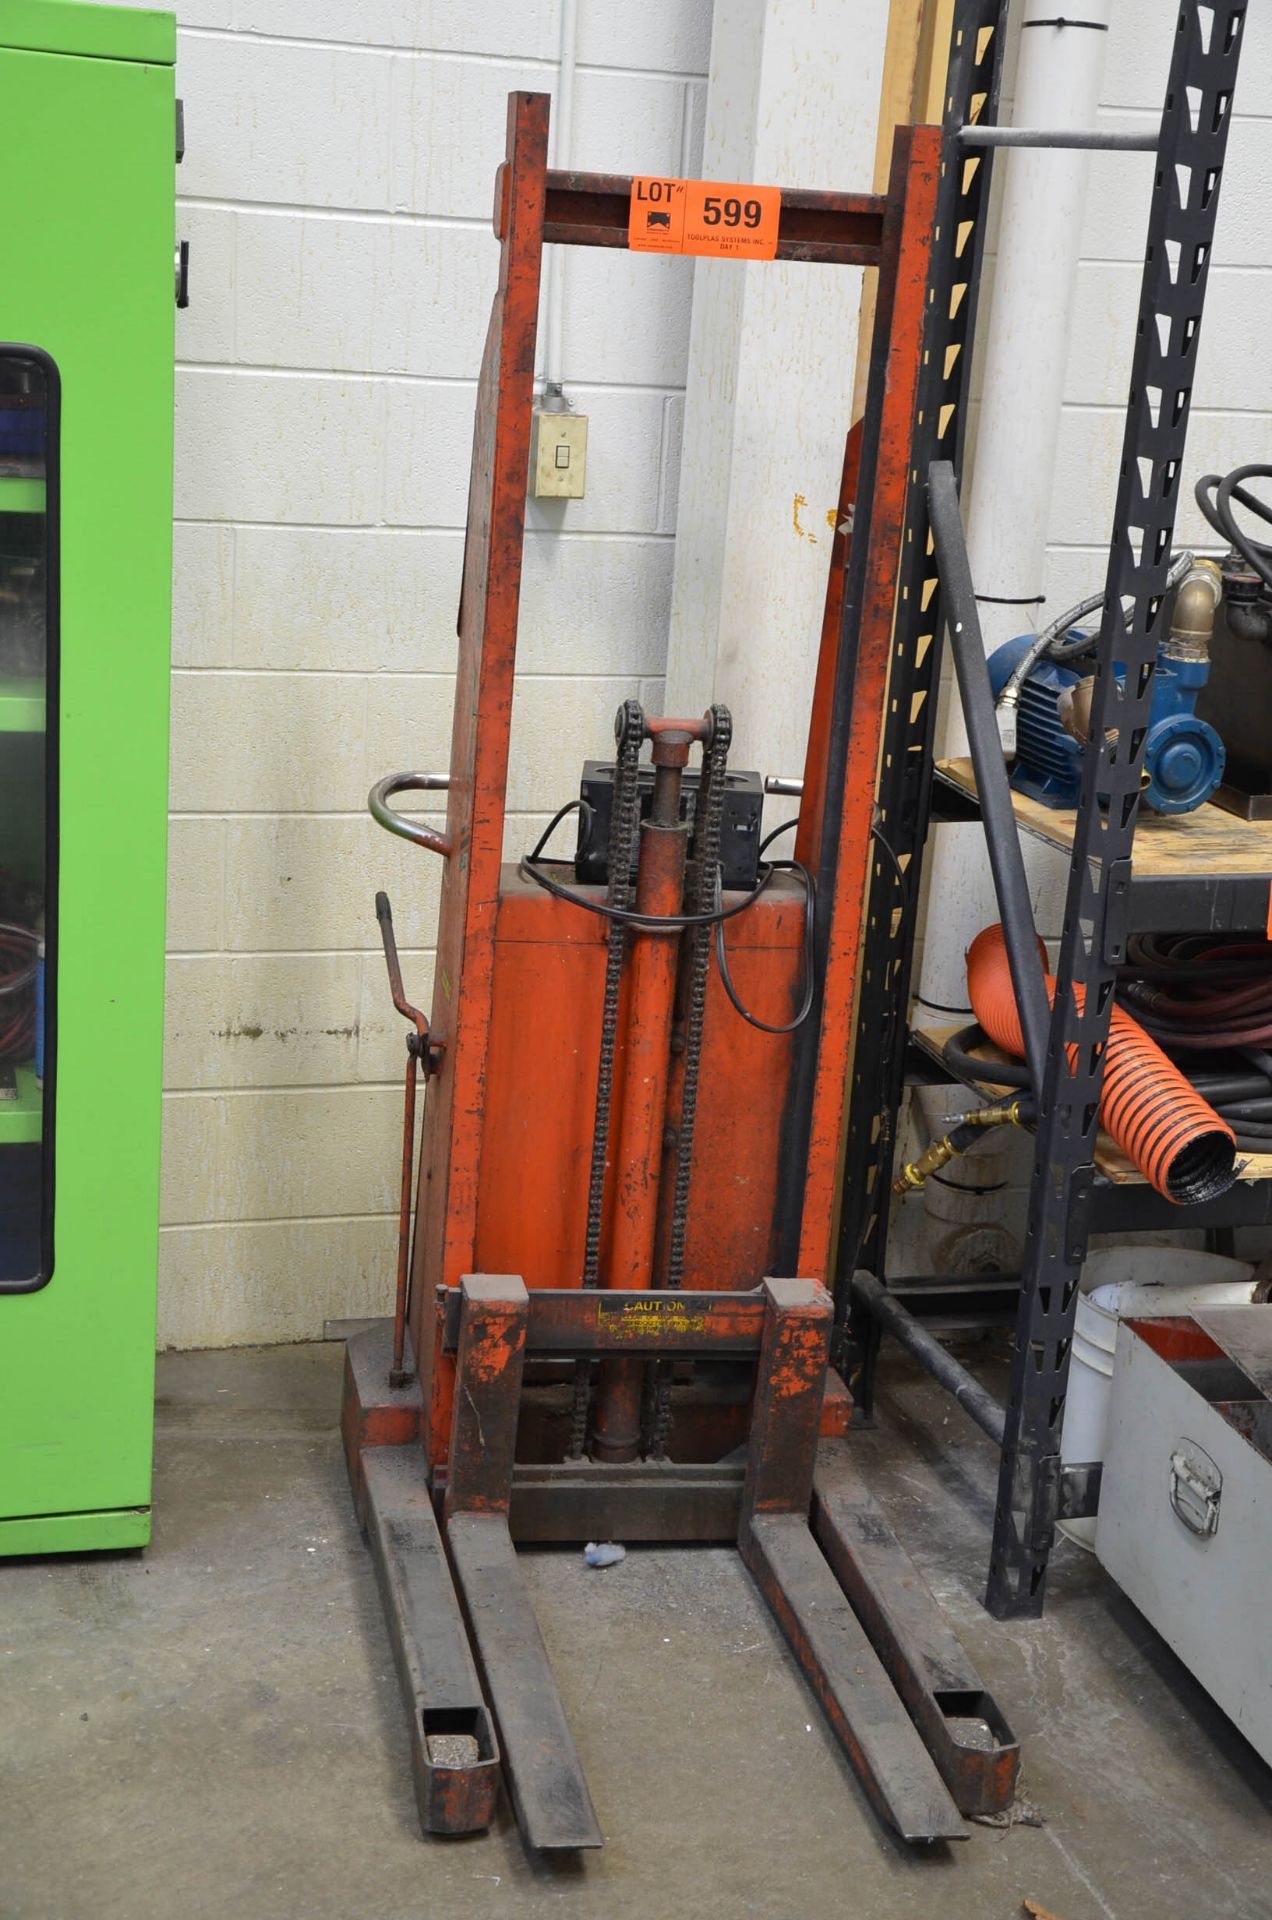 MFG UNKNOWN ELECTRIC DIE CART WITH CHARGER